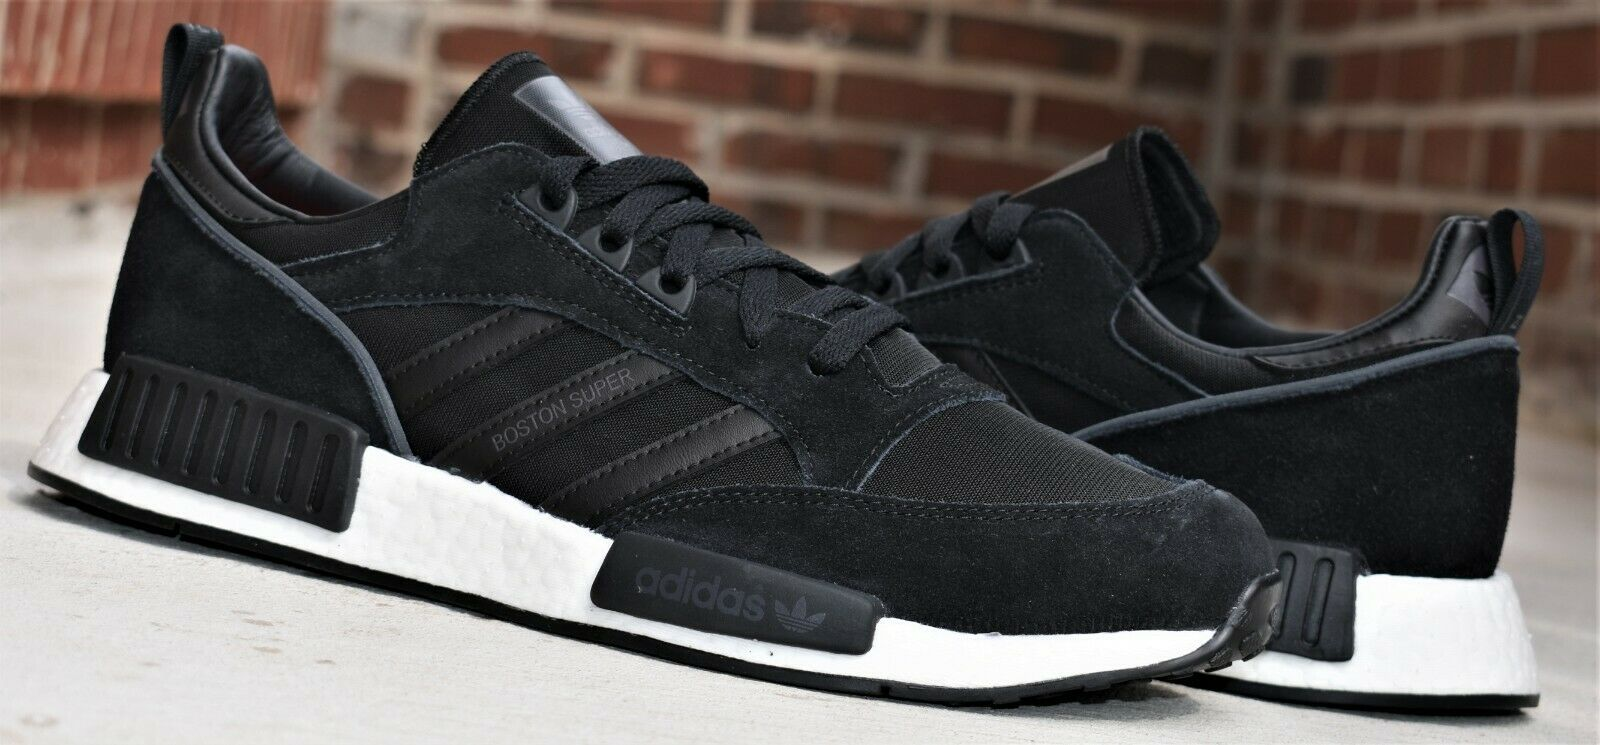 ADIDAS ORIGINALS BOSTON SUPER X R1 - New Men's Black White NMD shoes Sneakers